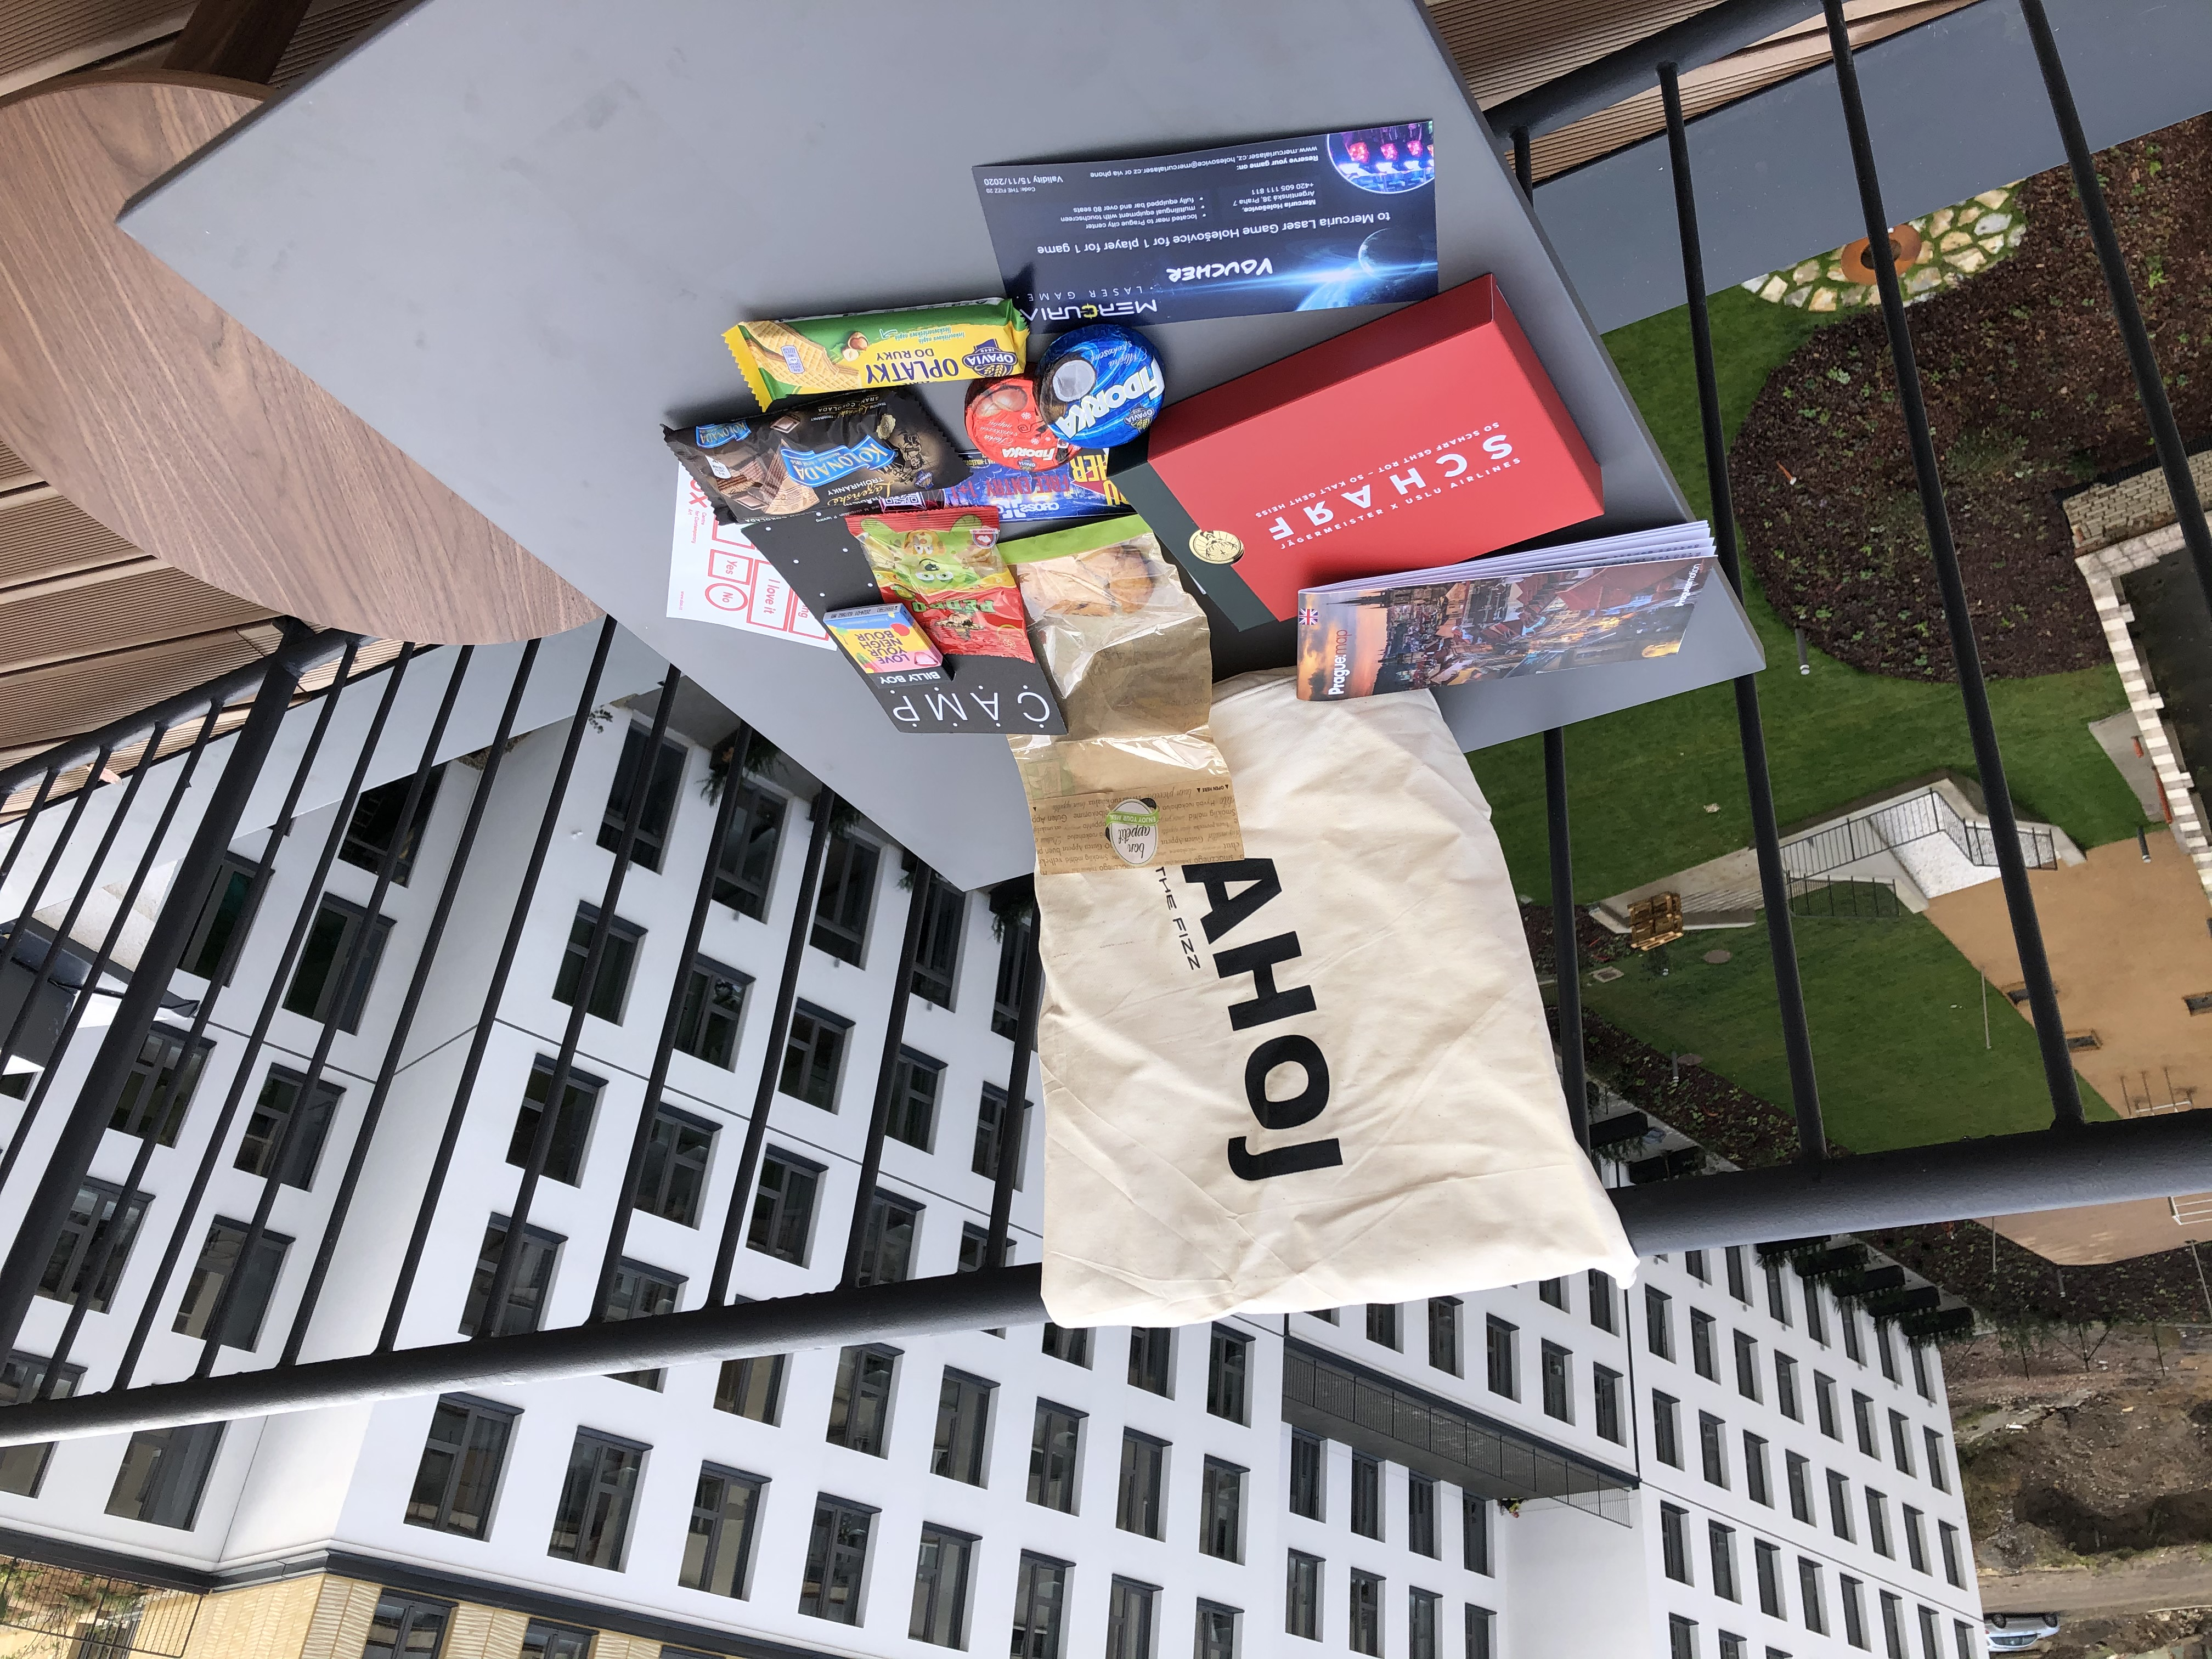 """A square table with sweets - chocolate, cookies, traditional Czech """"oplatky"""" -, vouchers and a THE FIZZ welcome bag with """"AHOJ"""" written on it."""